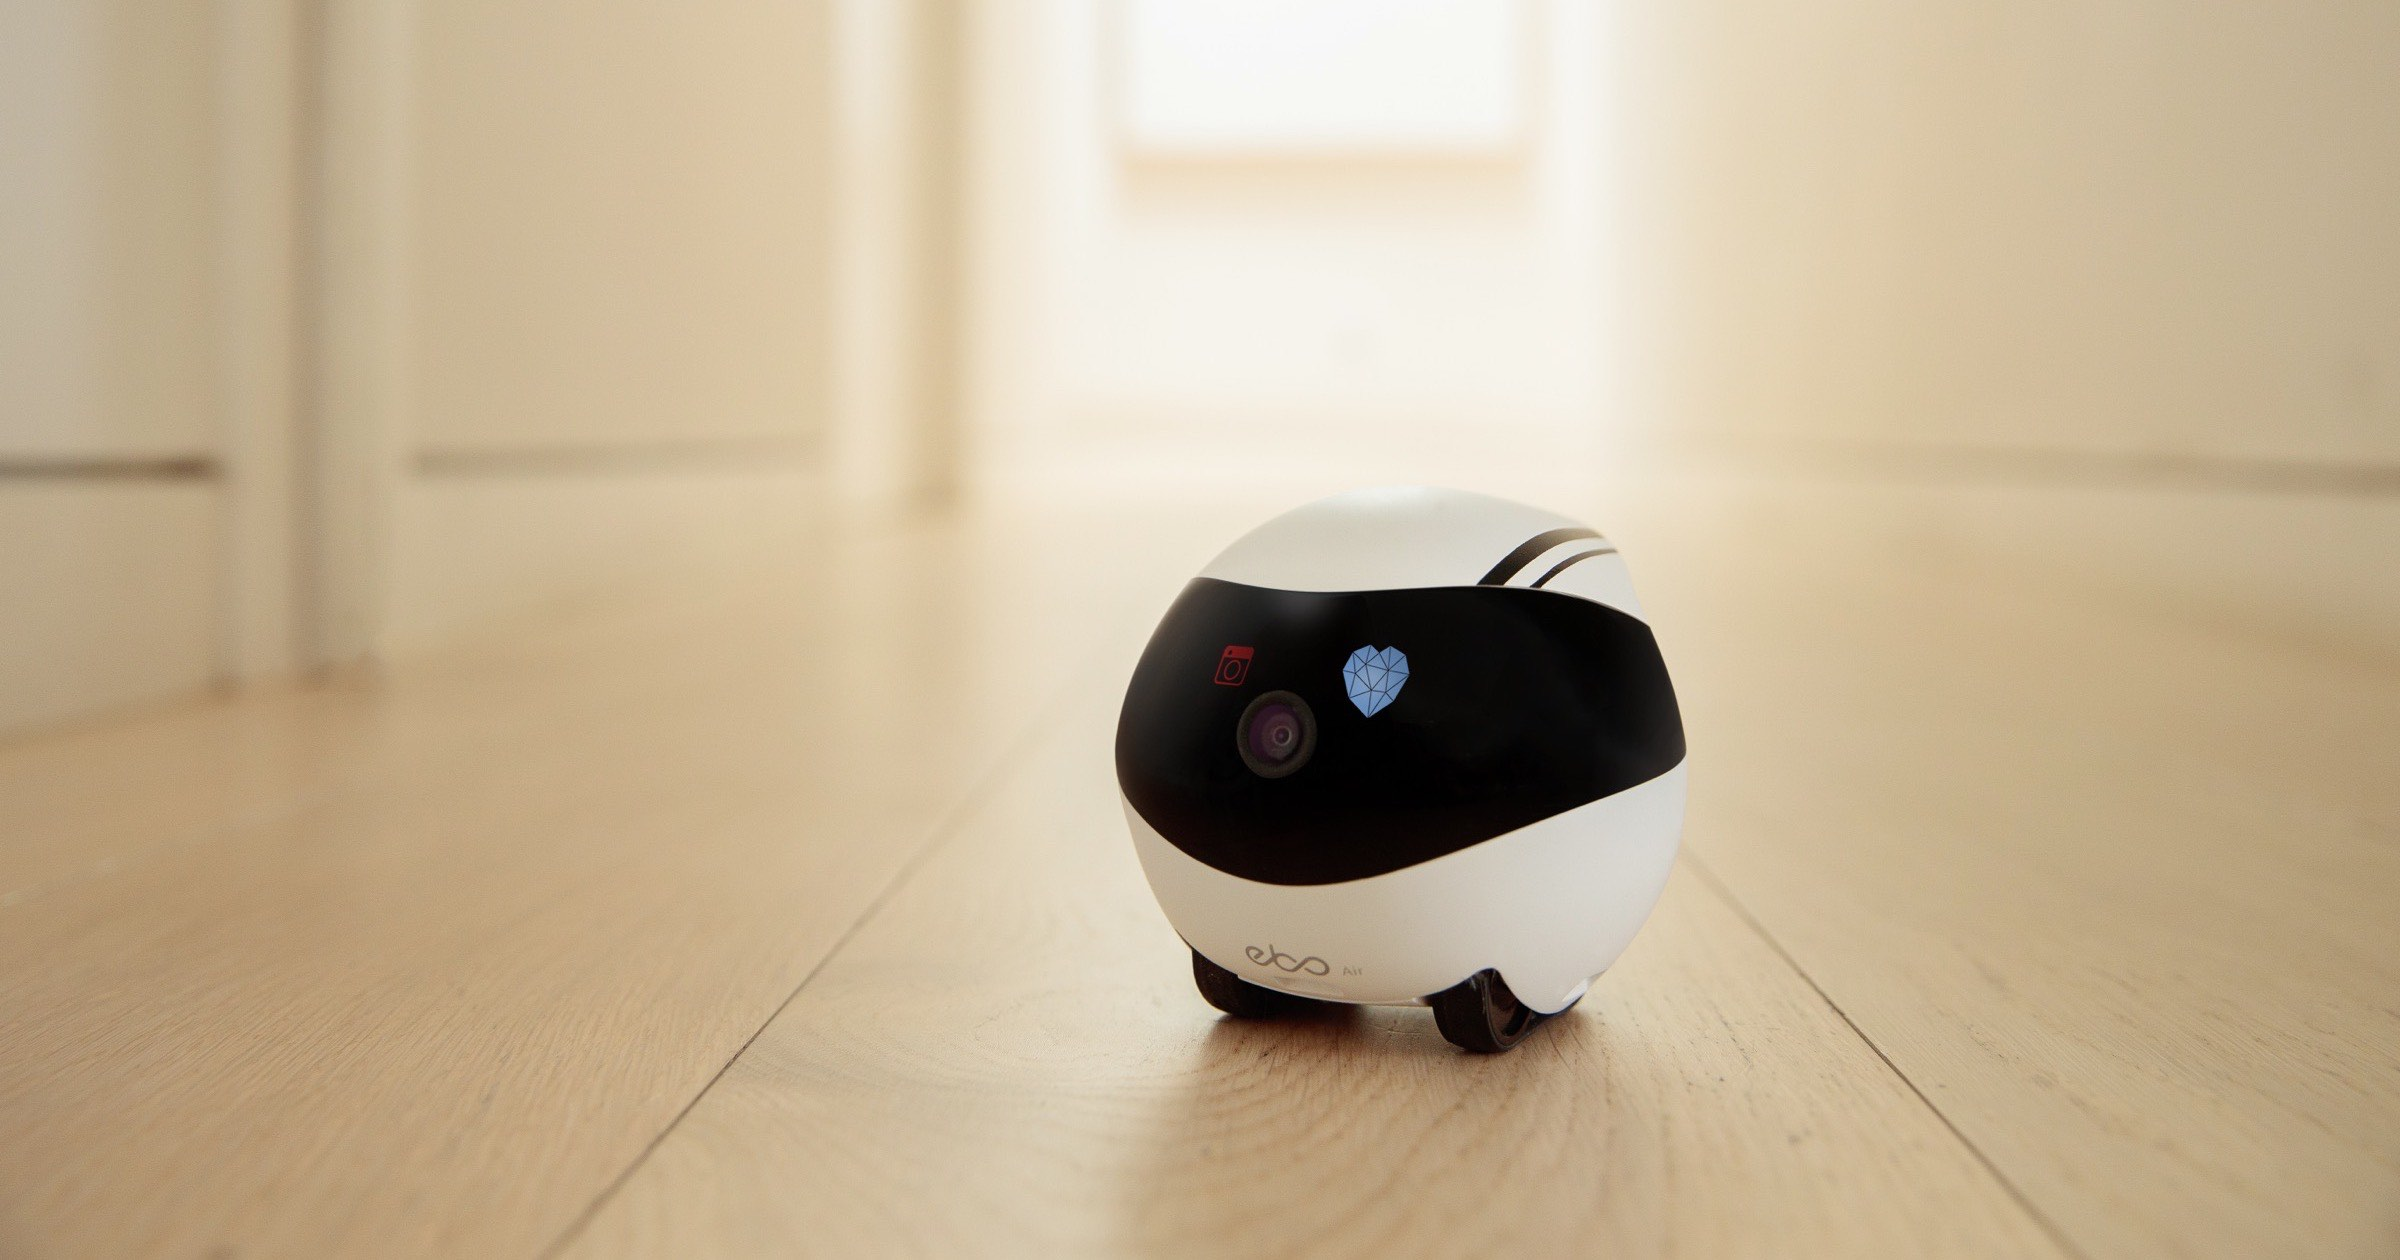 EBO is a Friendly Remote Robot for Families